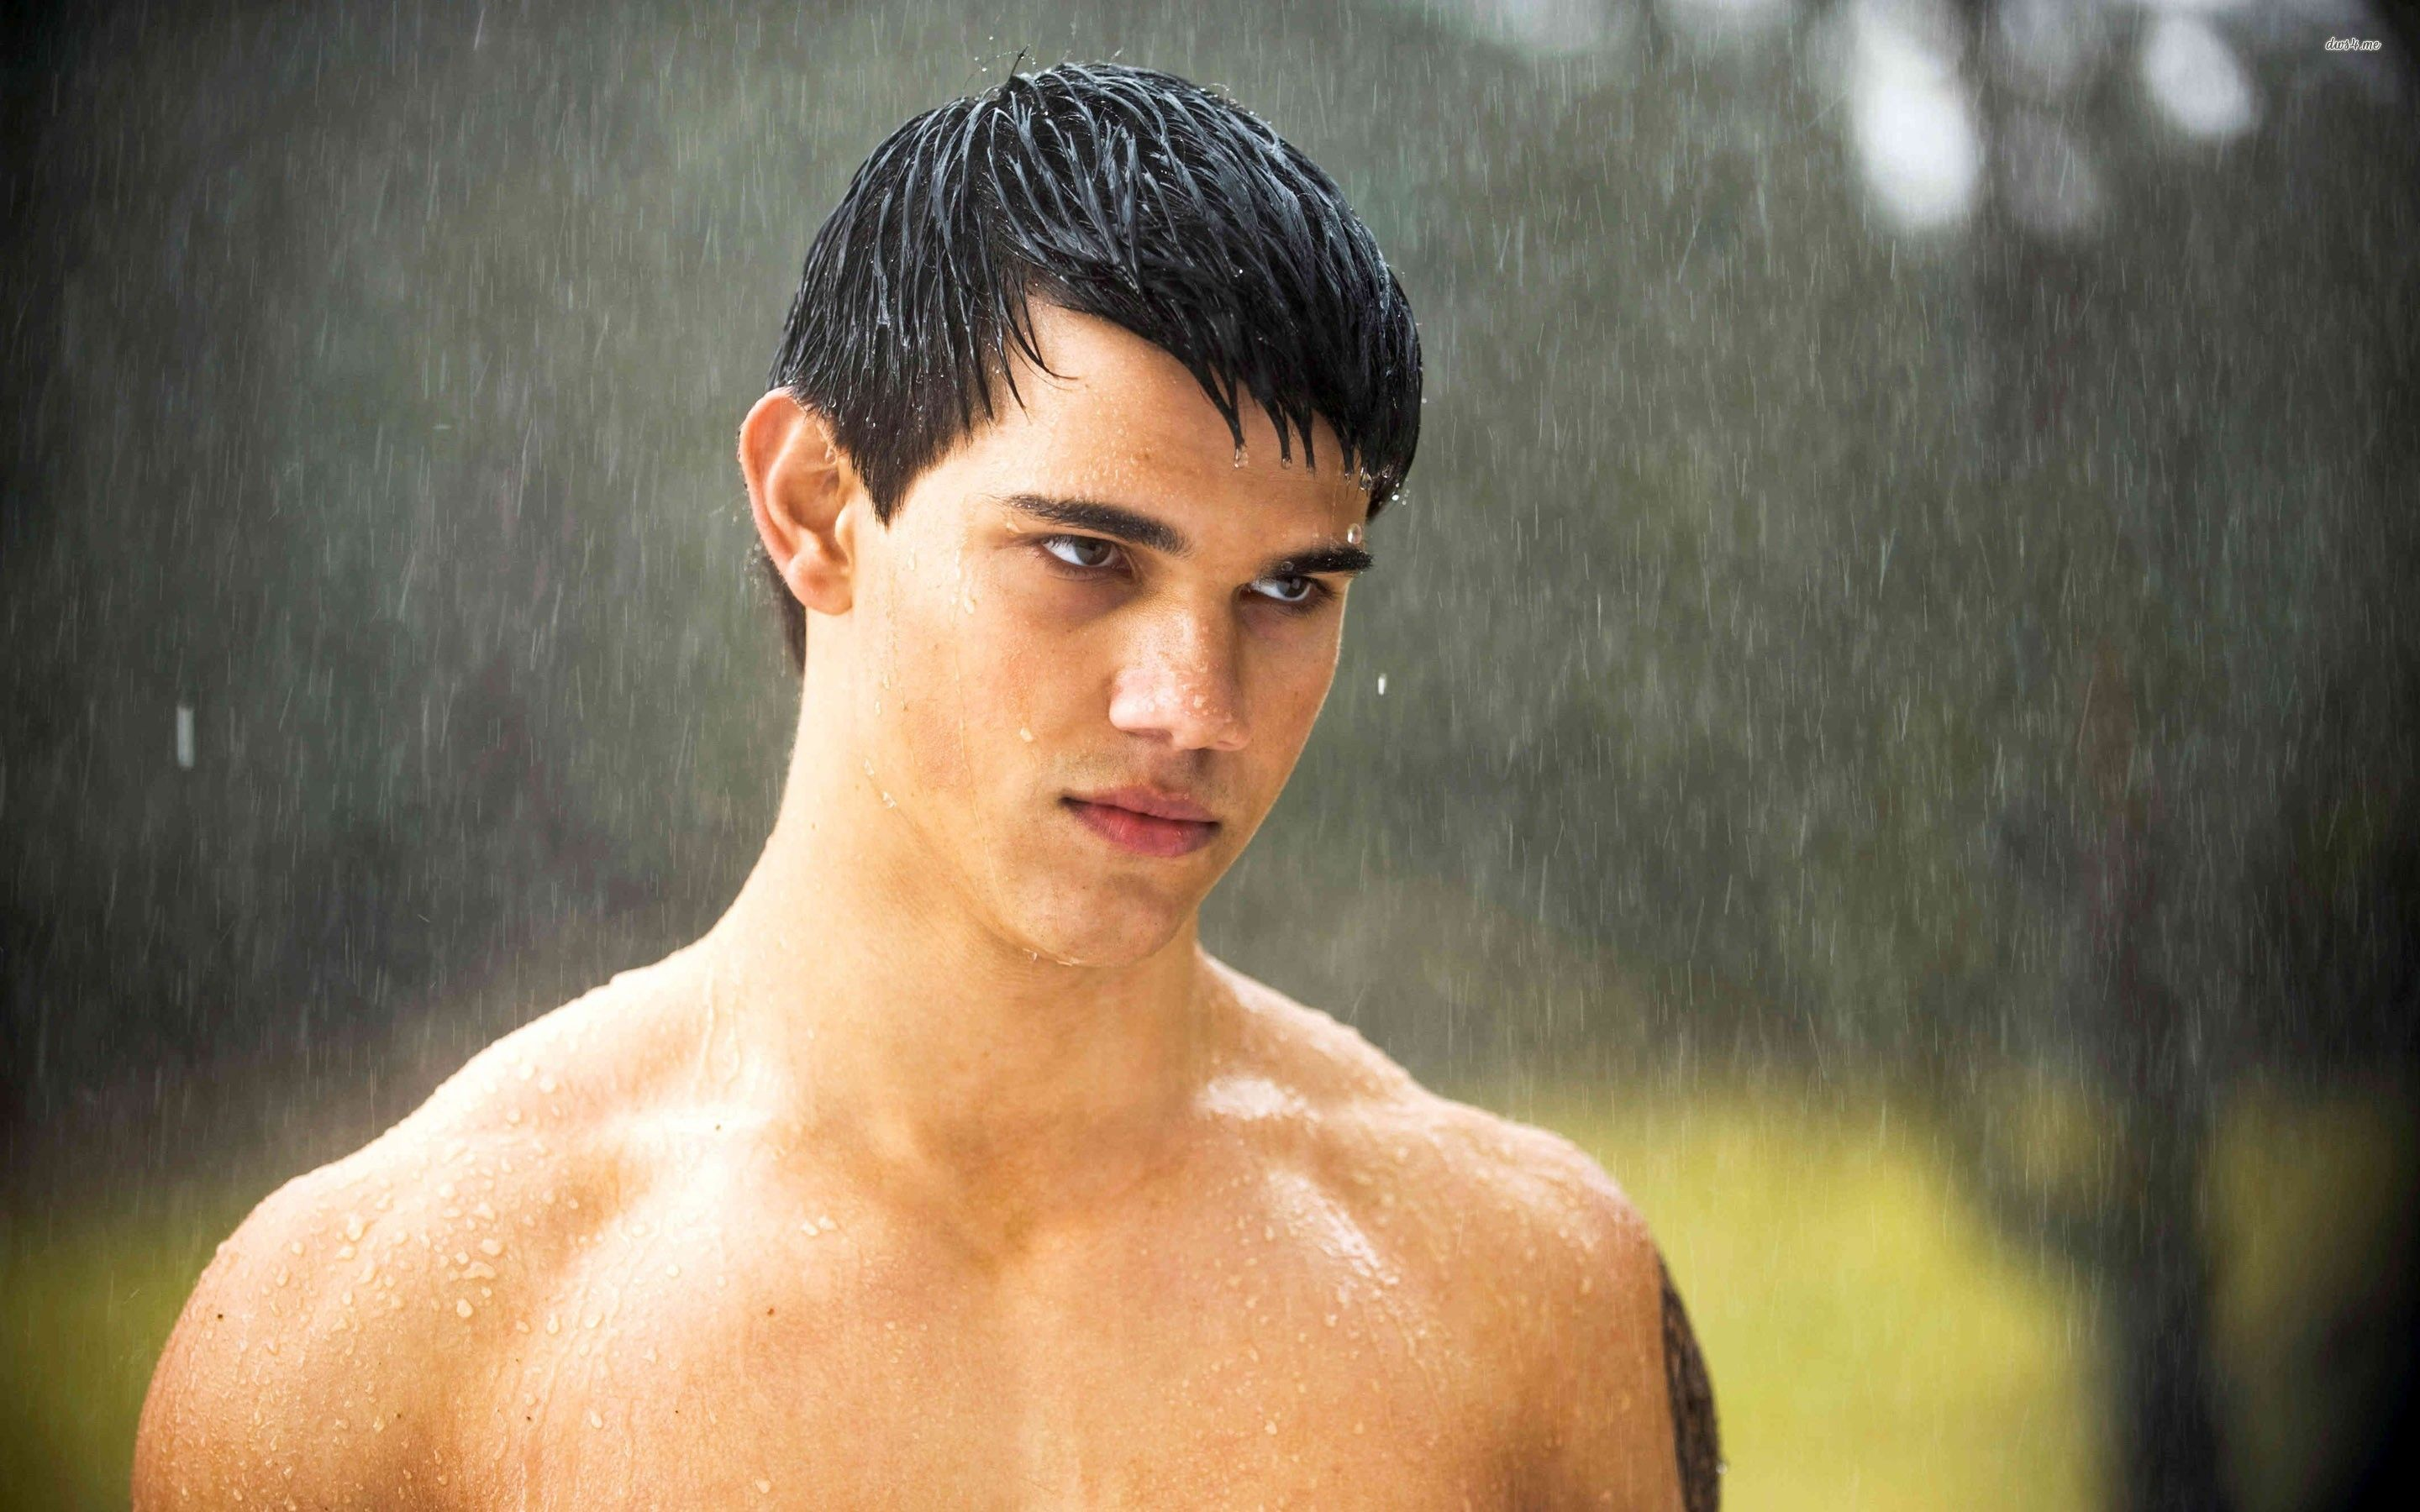 2880x1800 Jacob Black - Twilight Jacob 4k Hd (#1095906) - HD Wallpaper ...